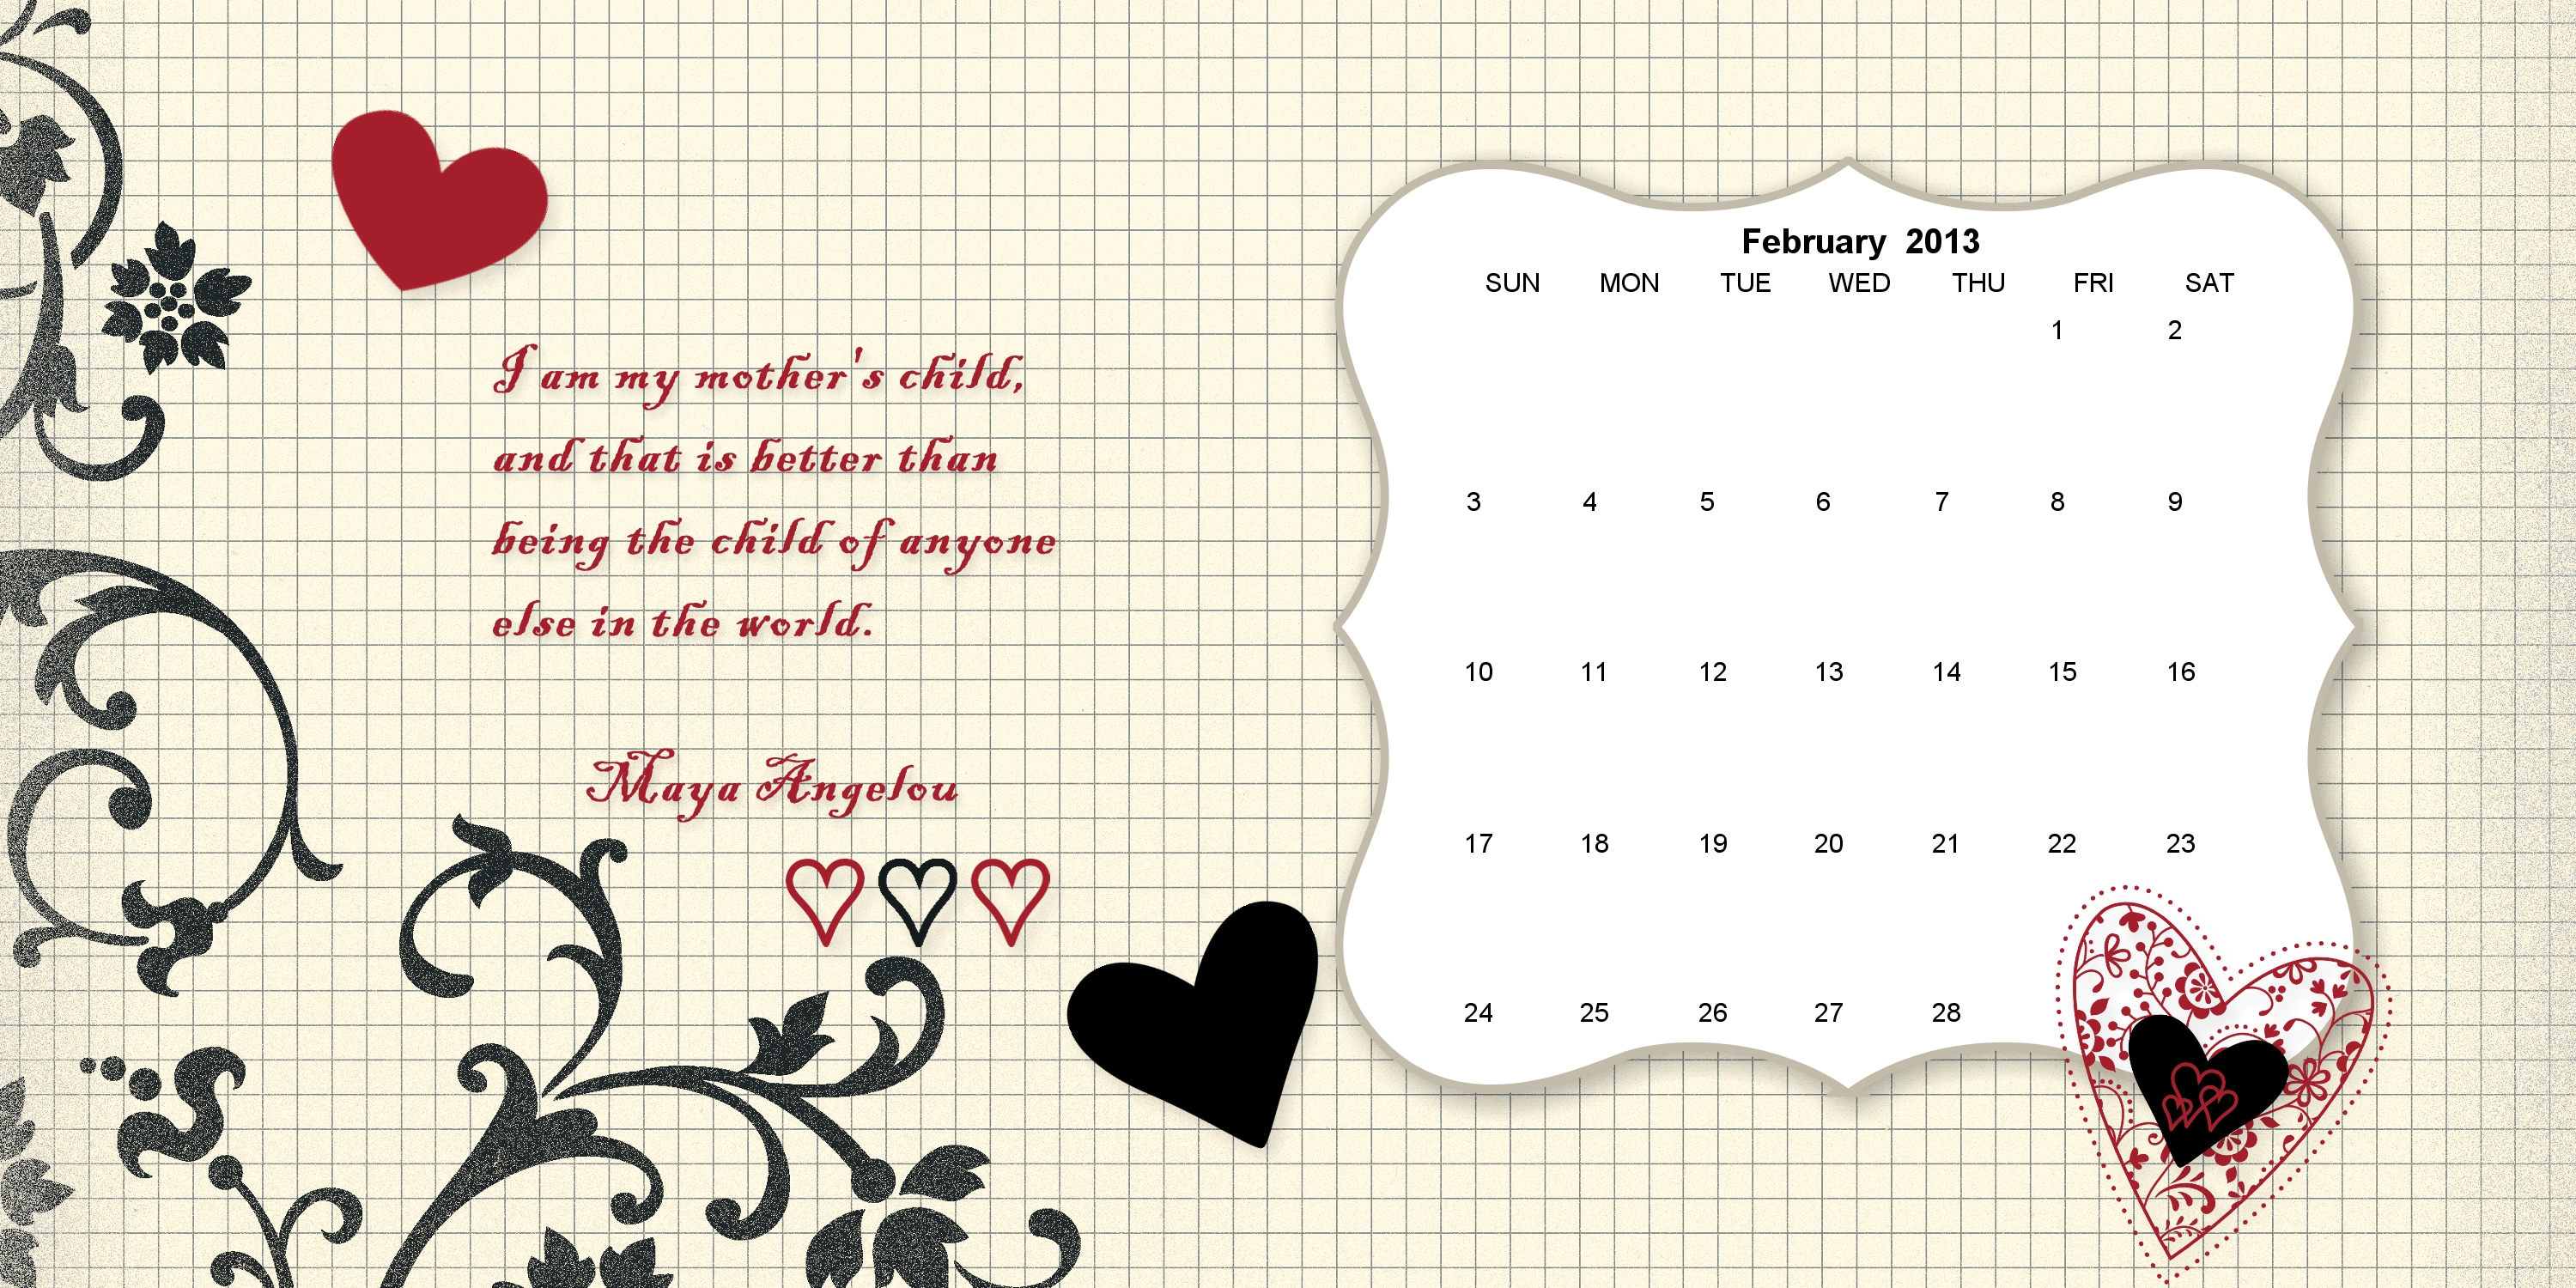 Funny Monthly Calendar Quotes : Monthly calendar quotes quotesgram